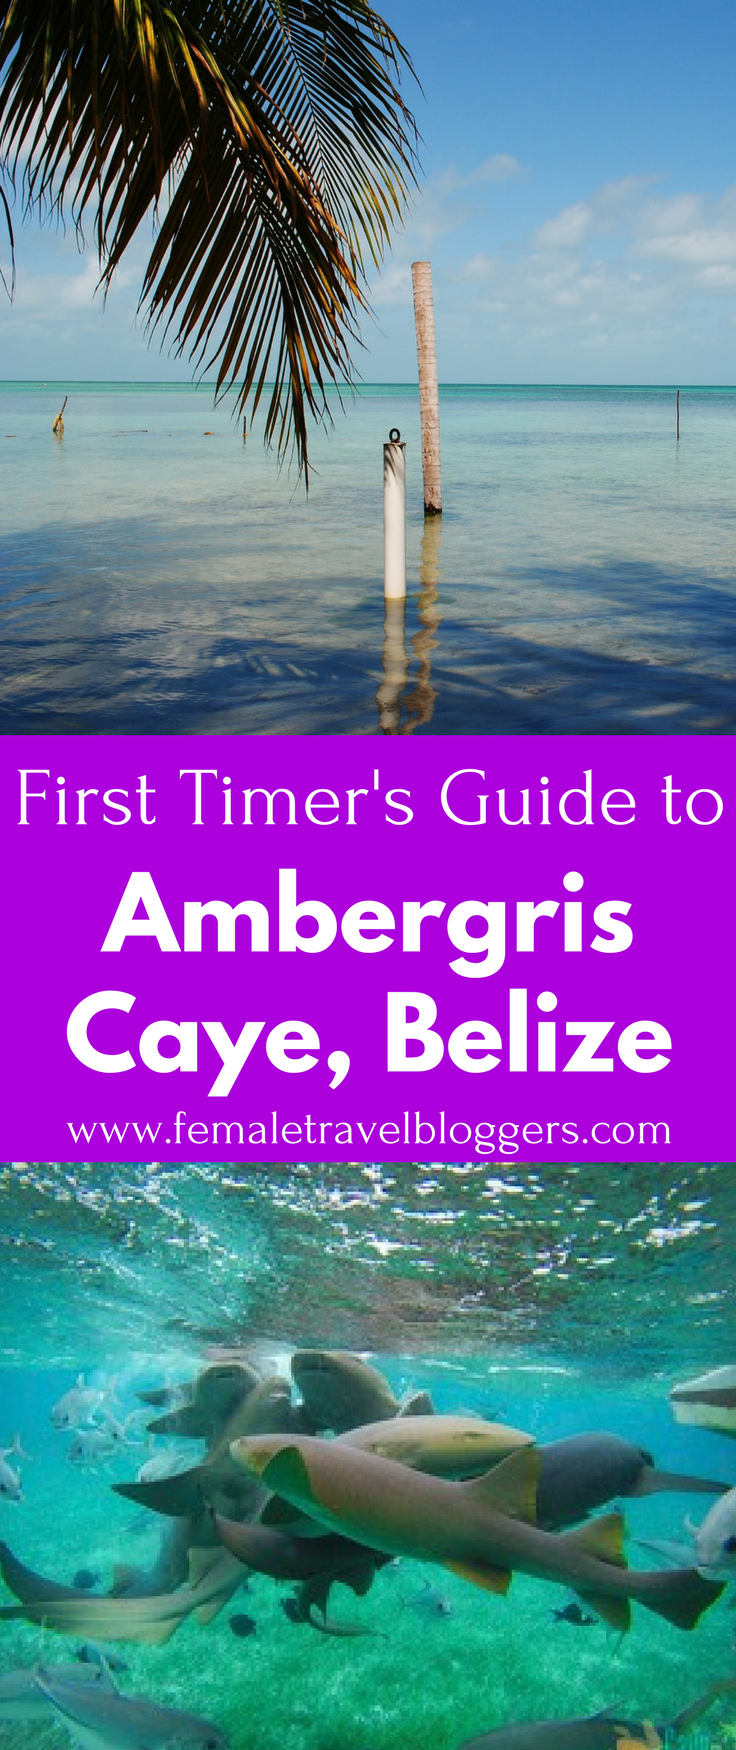 How Do You Get To Ambergris Caye From Belize City